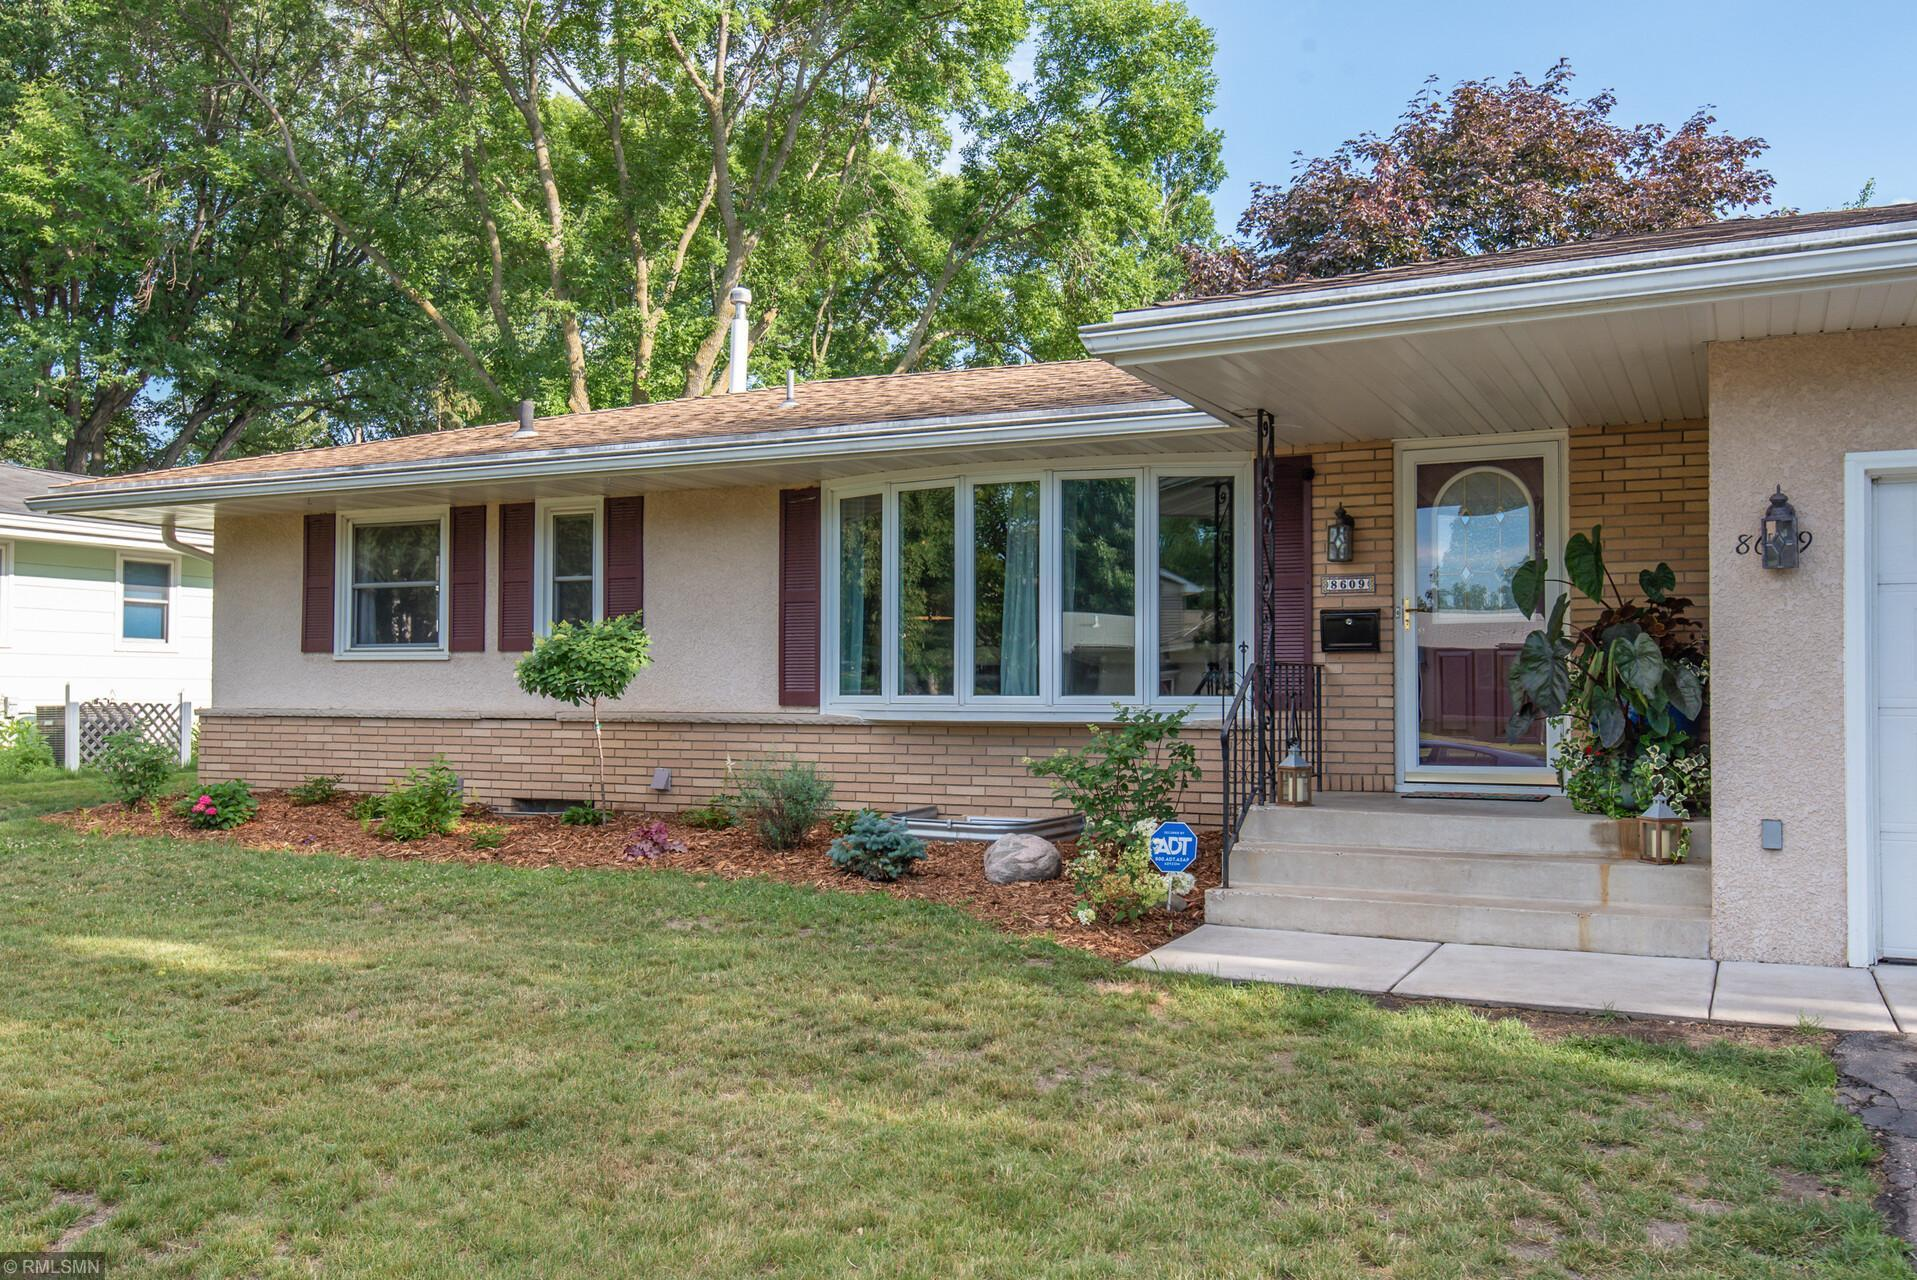 8609 40th Avenue N Property Photo - New Hope, MN real estate listing